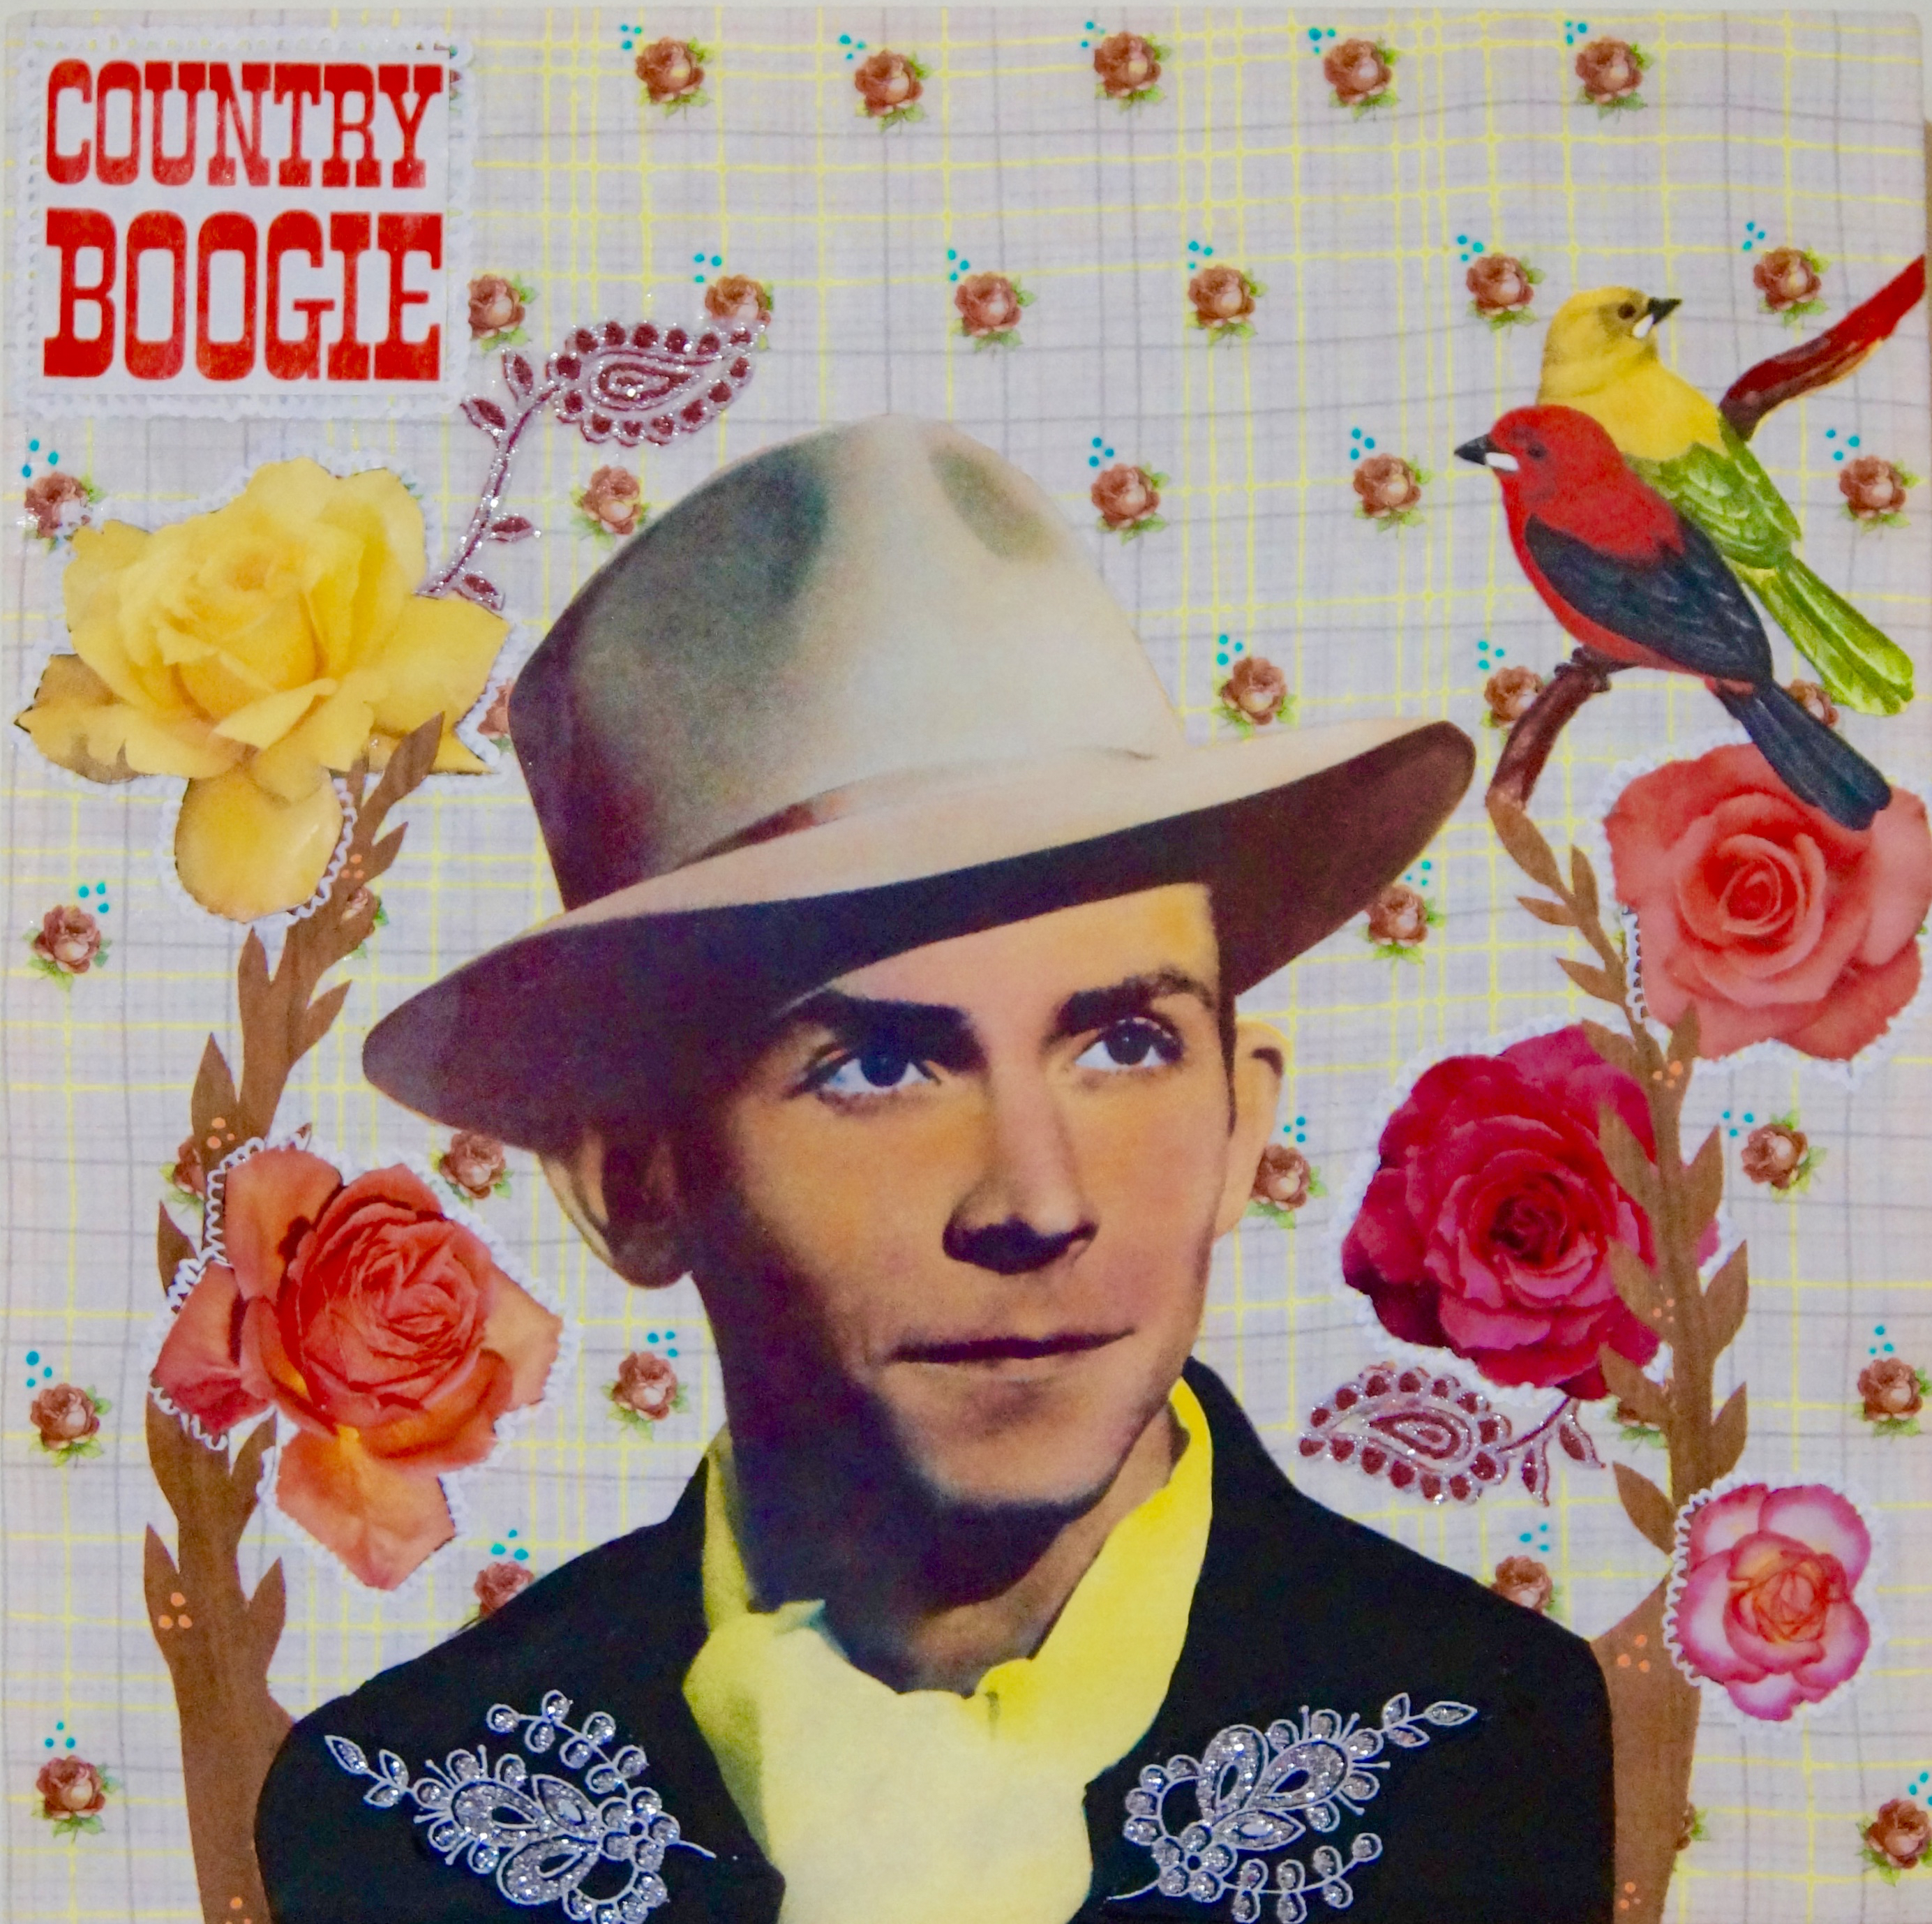 Hank Snr - Country Boogie